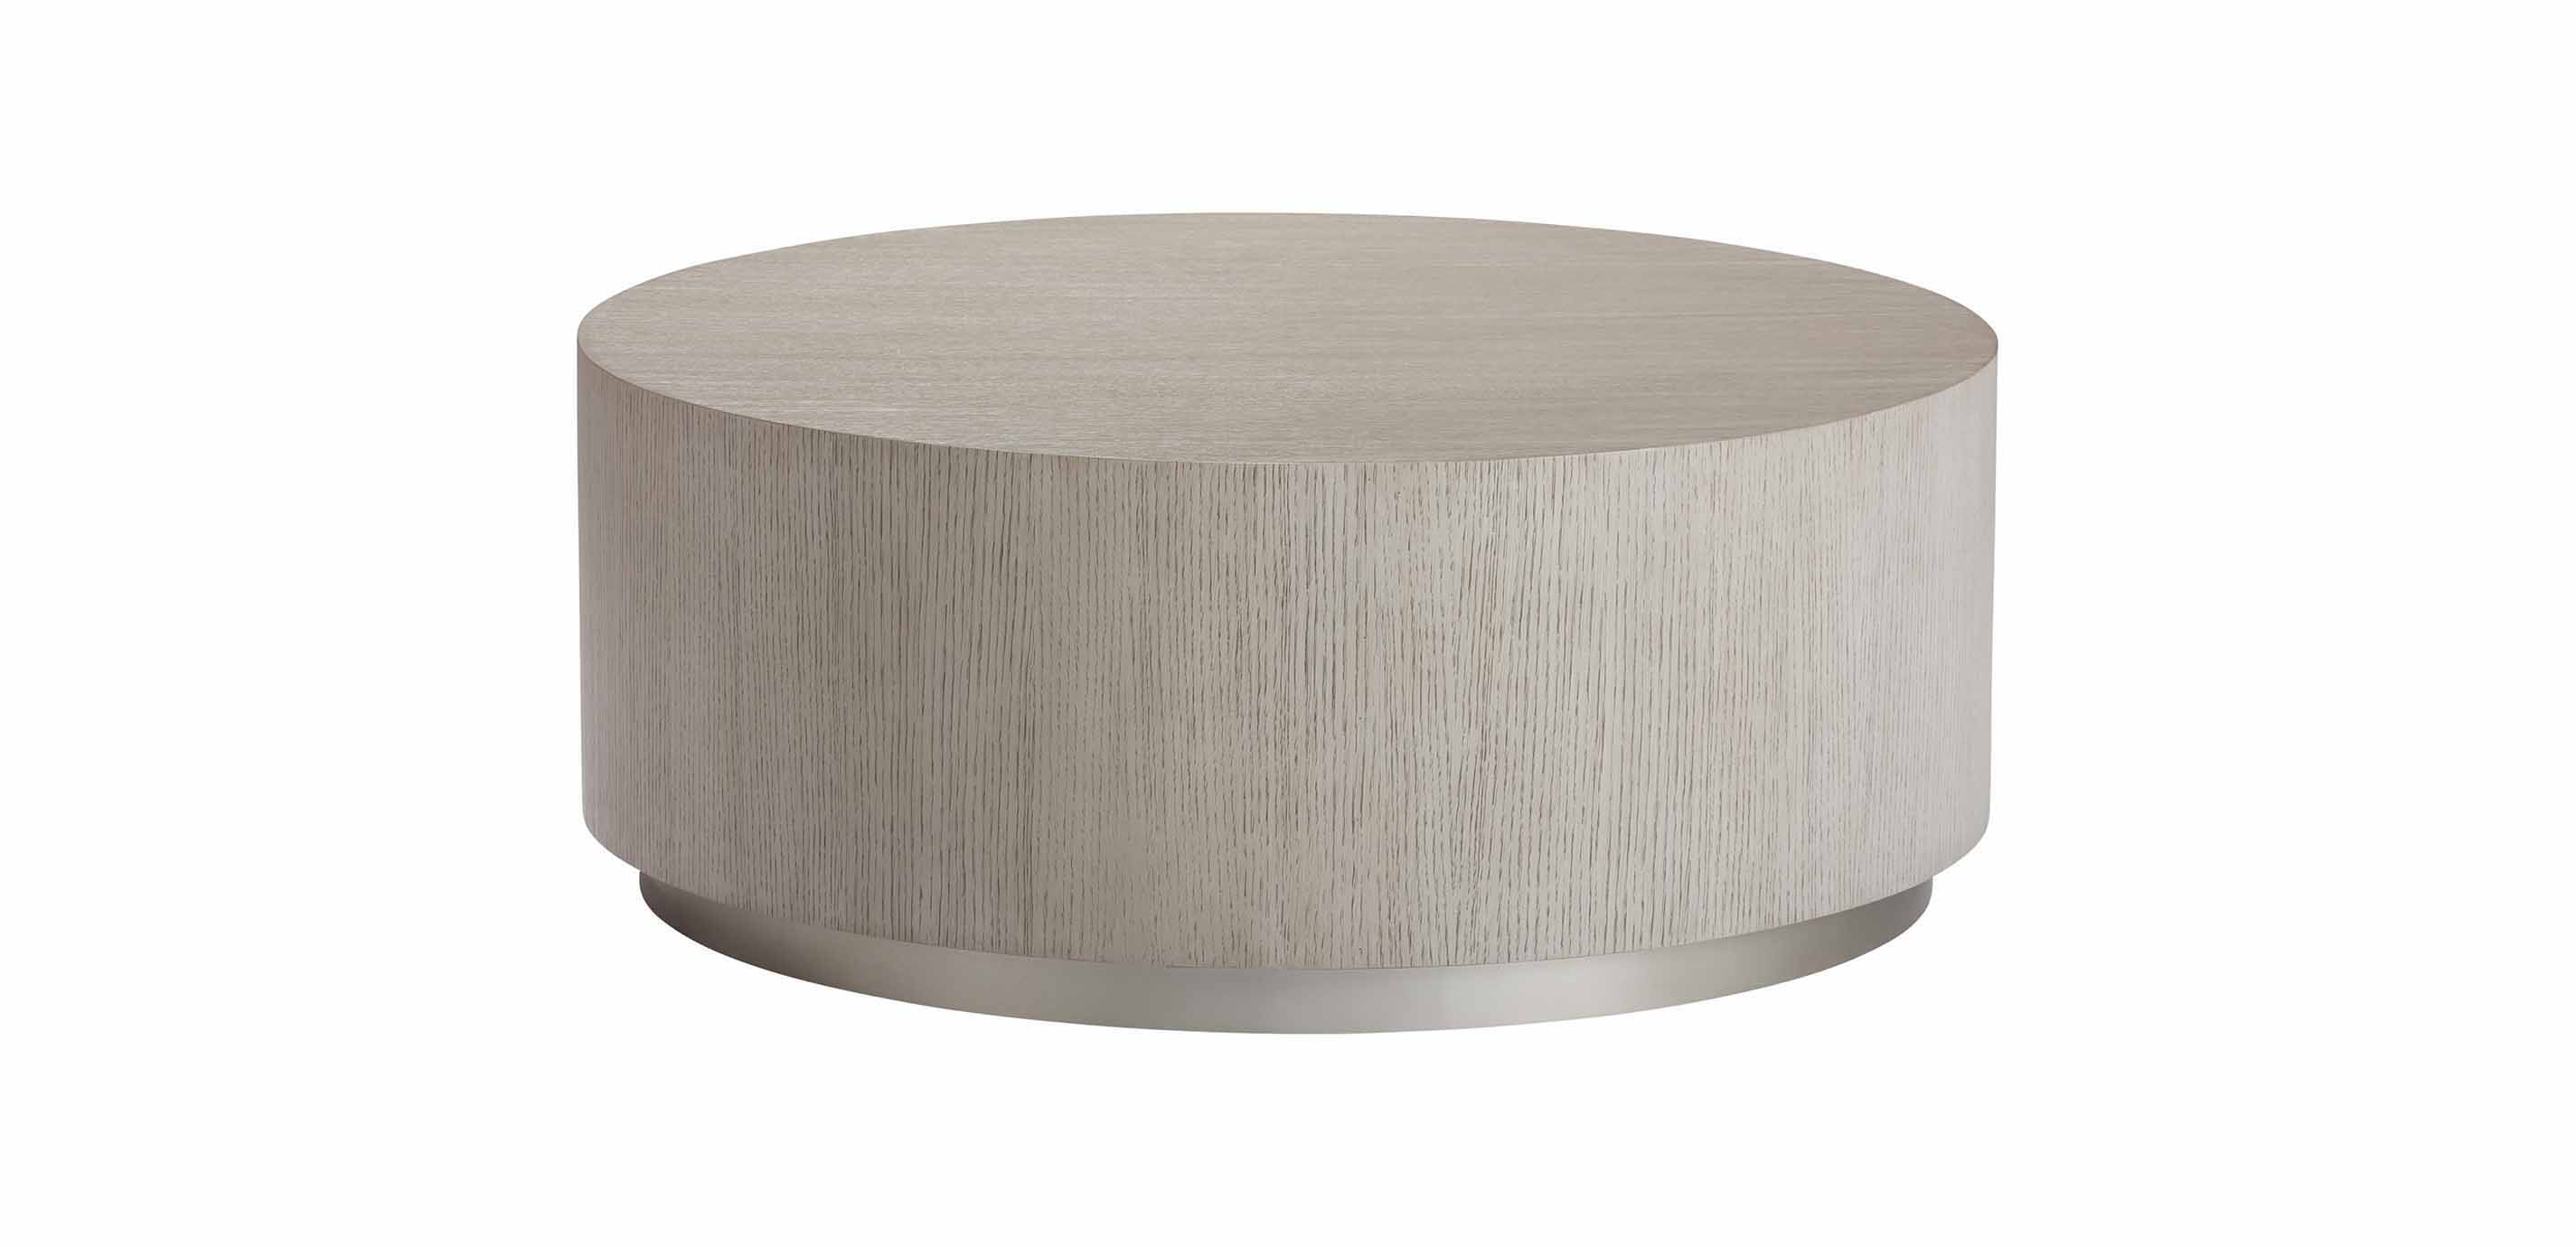 Braemore Round Coffee Table Plinth Coffee Table Ethan Allen